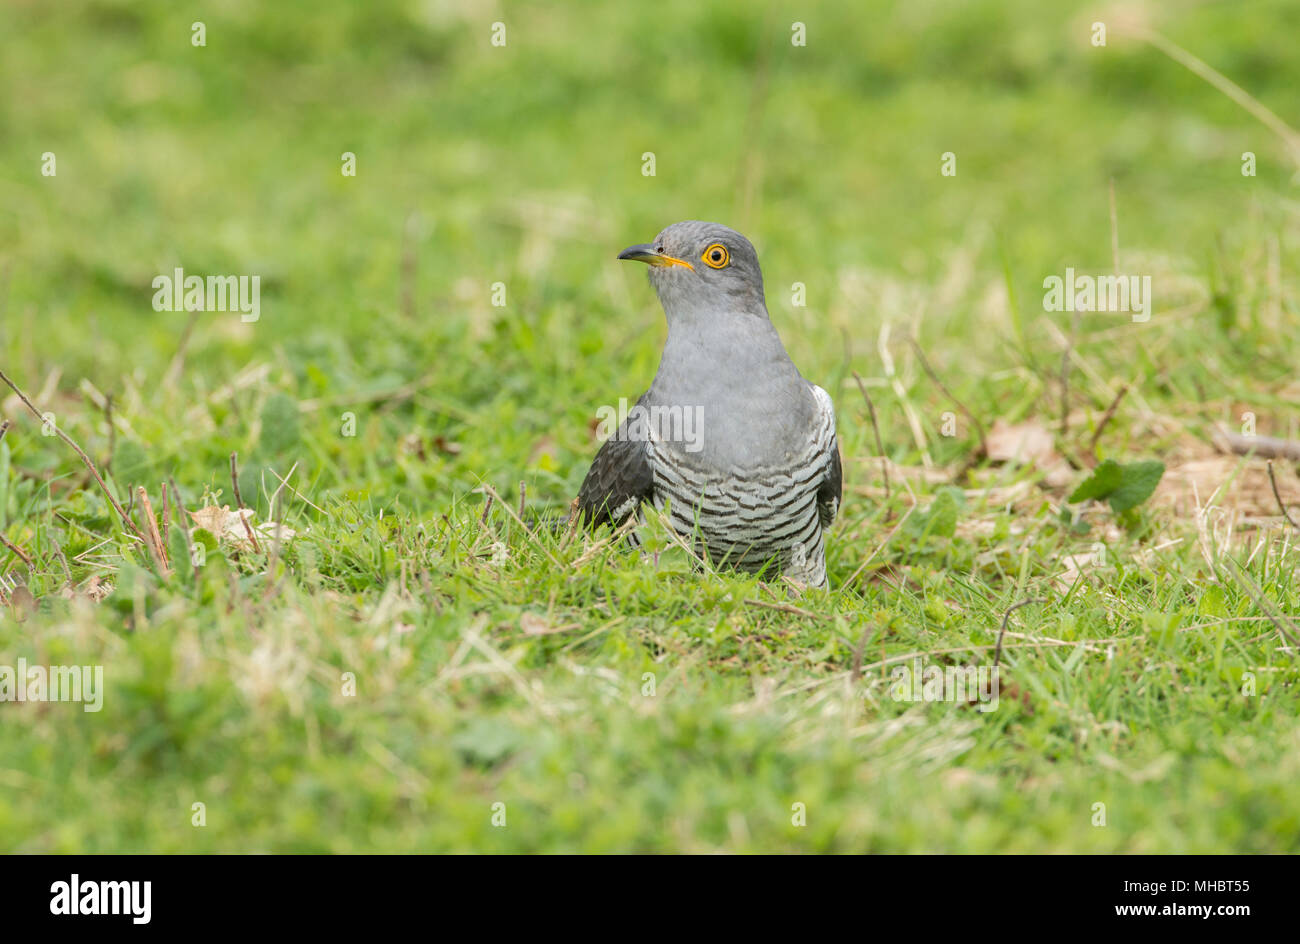 Male common cuckoo (Cuculus canorus) foraging on the ground - Stock Image